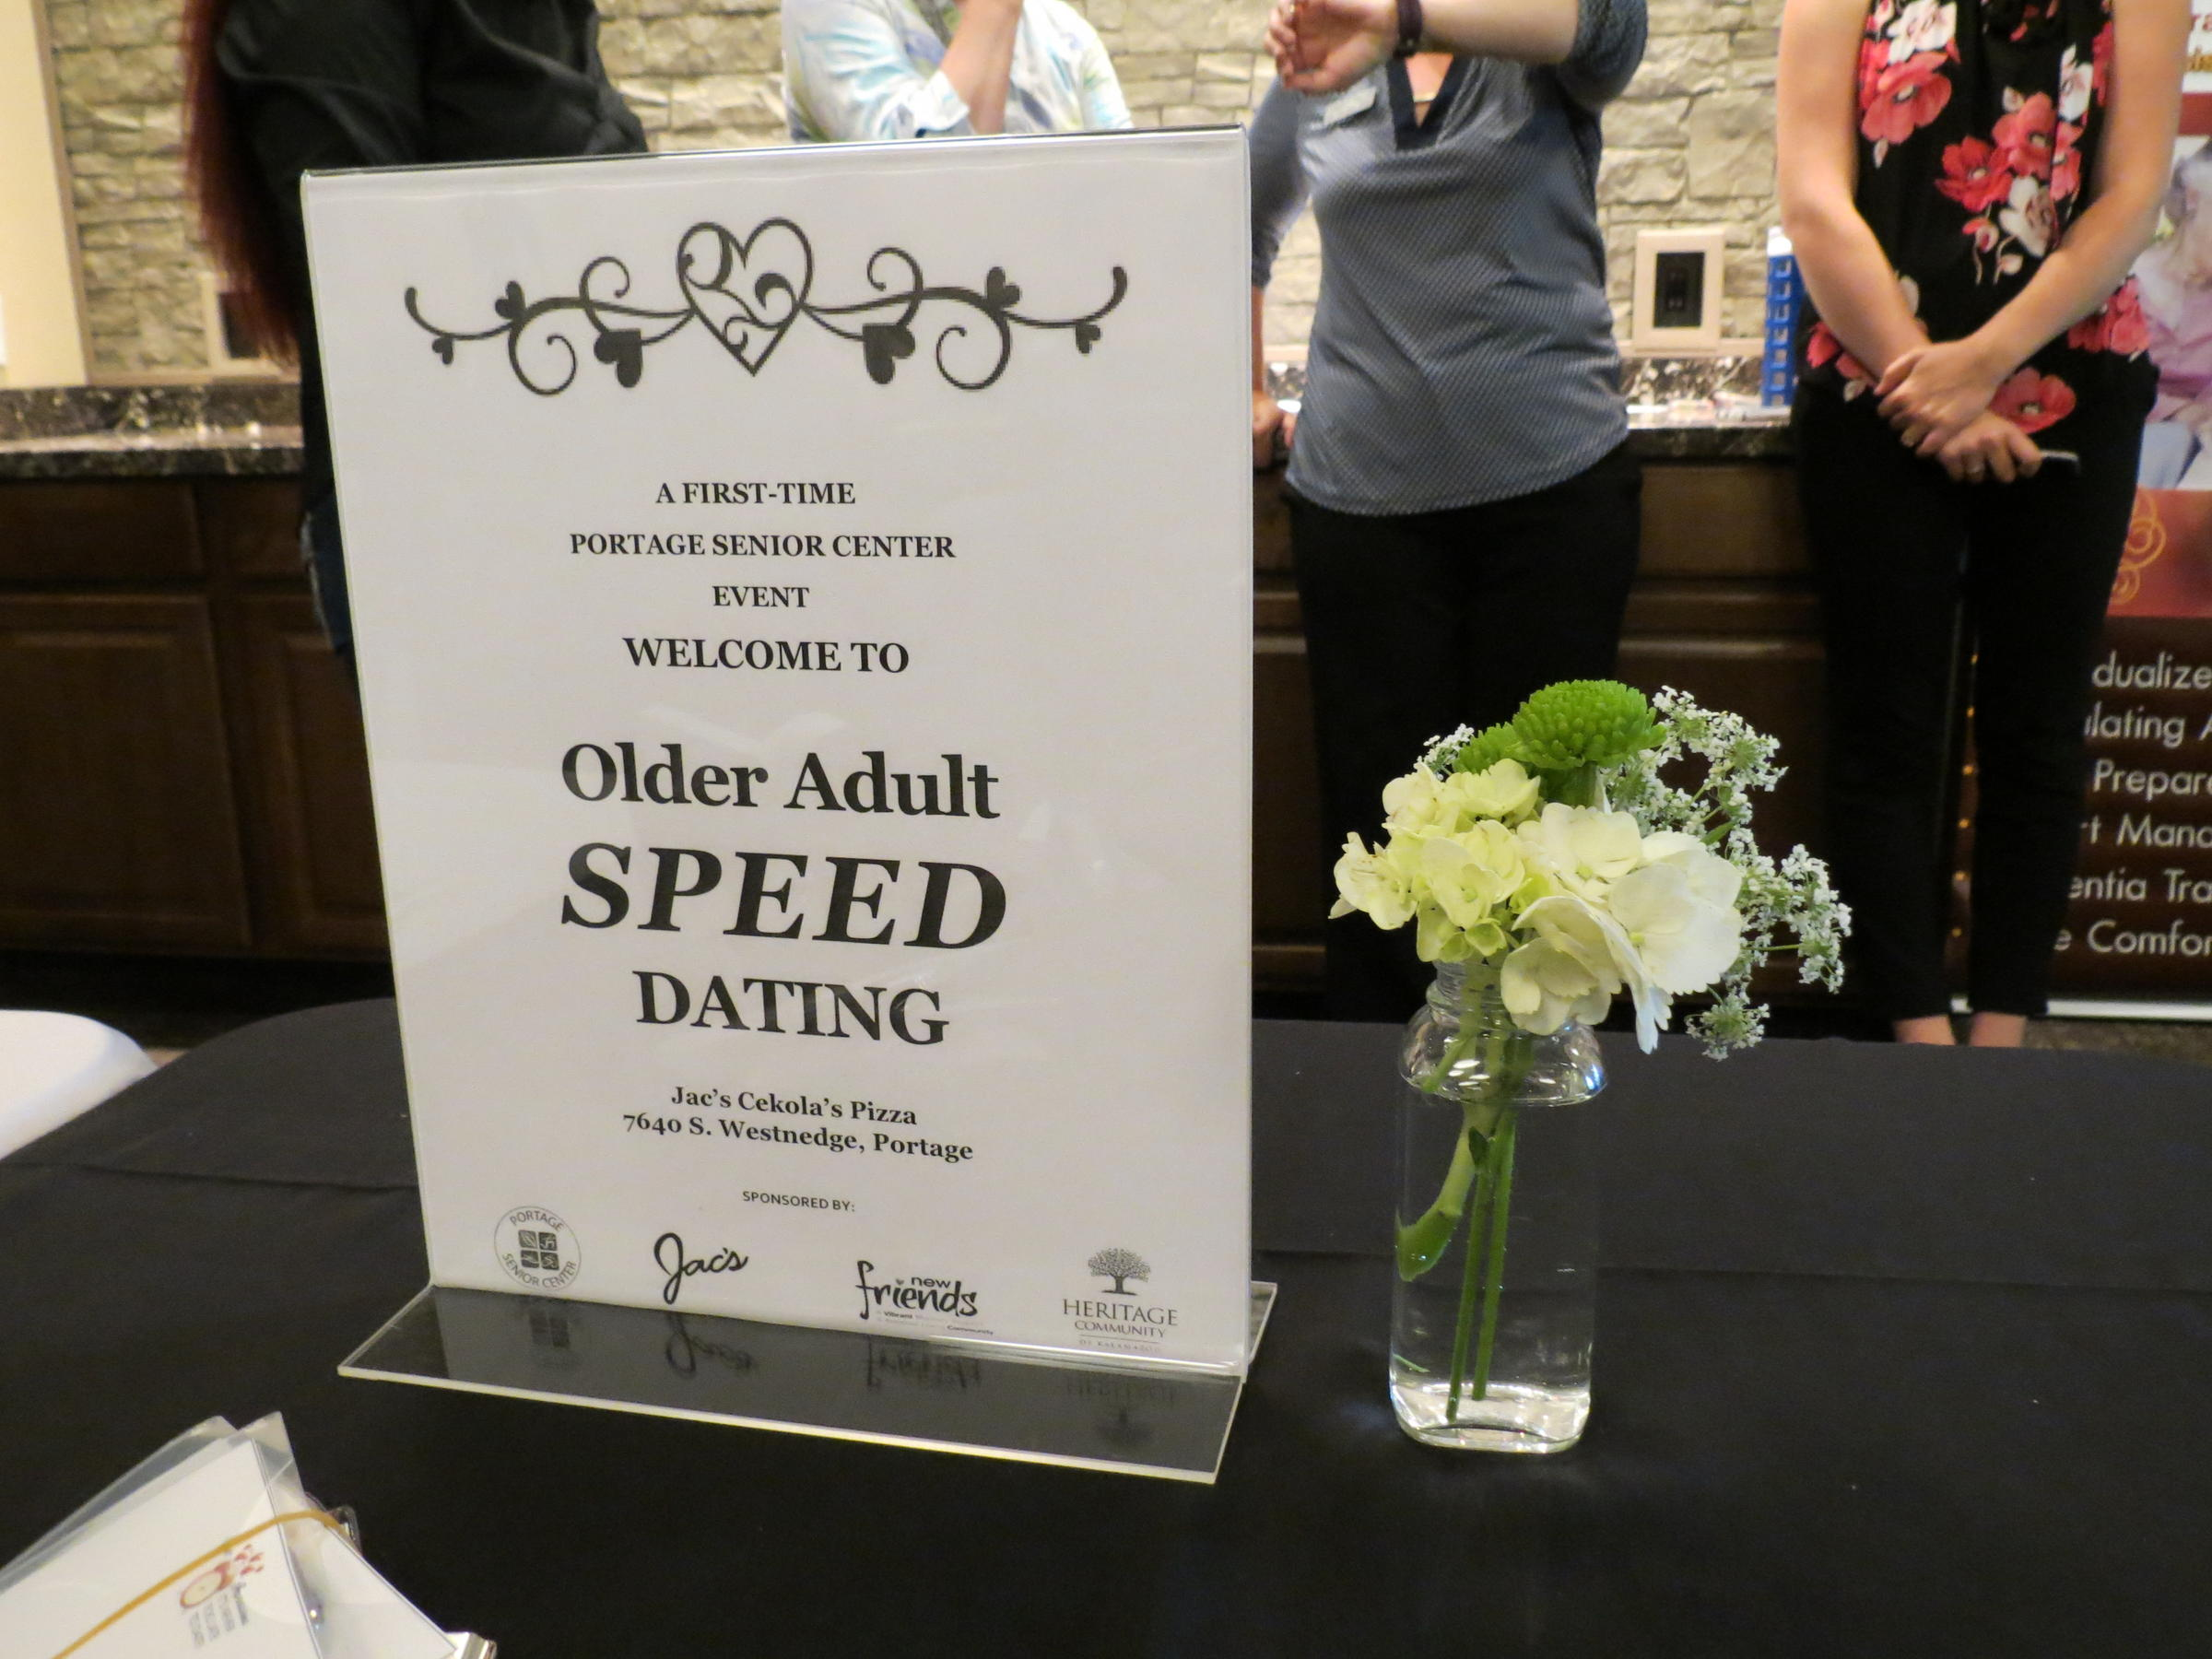 Speed dating over 60